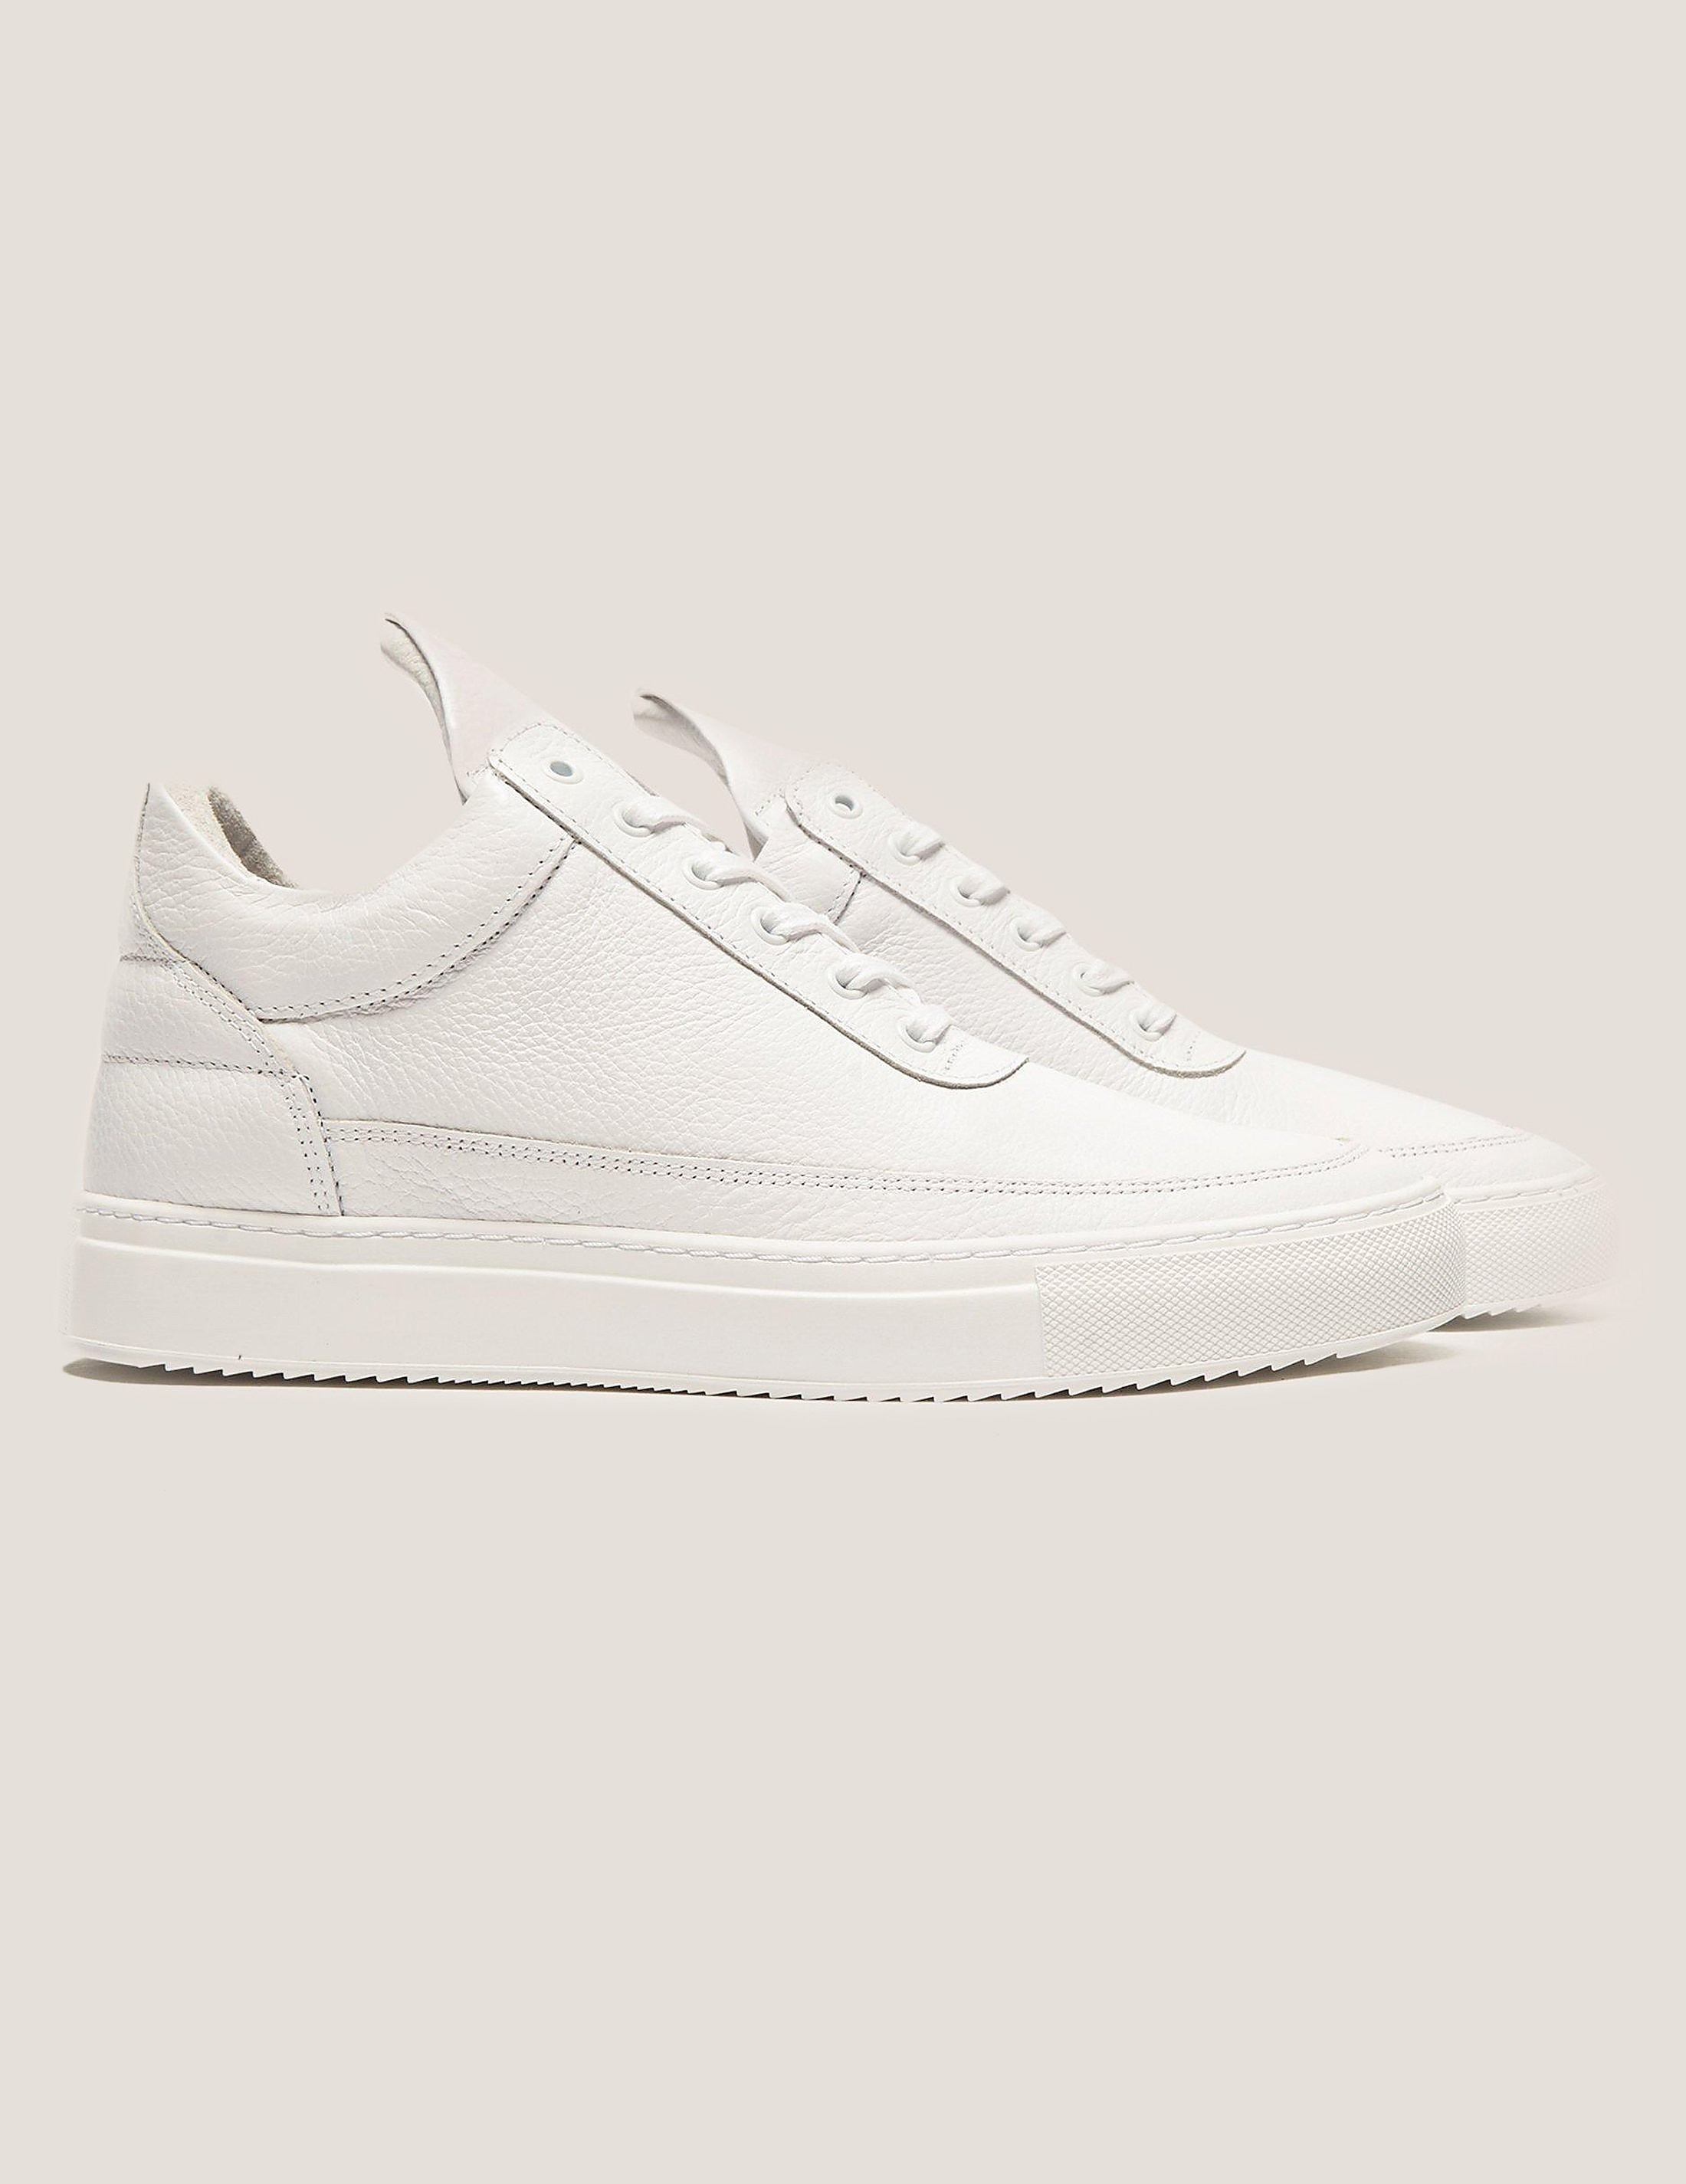 Filling Pieces Low Top Kobe